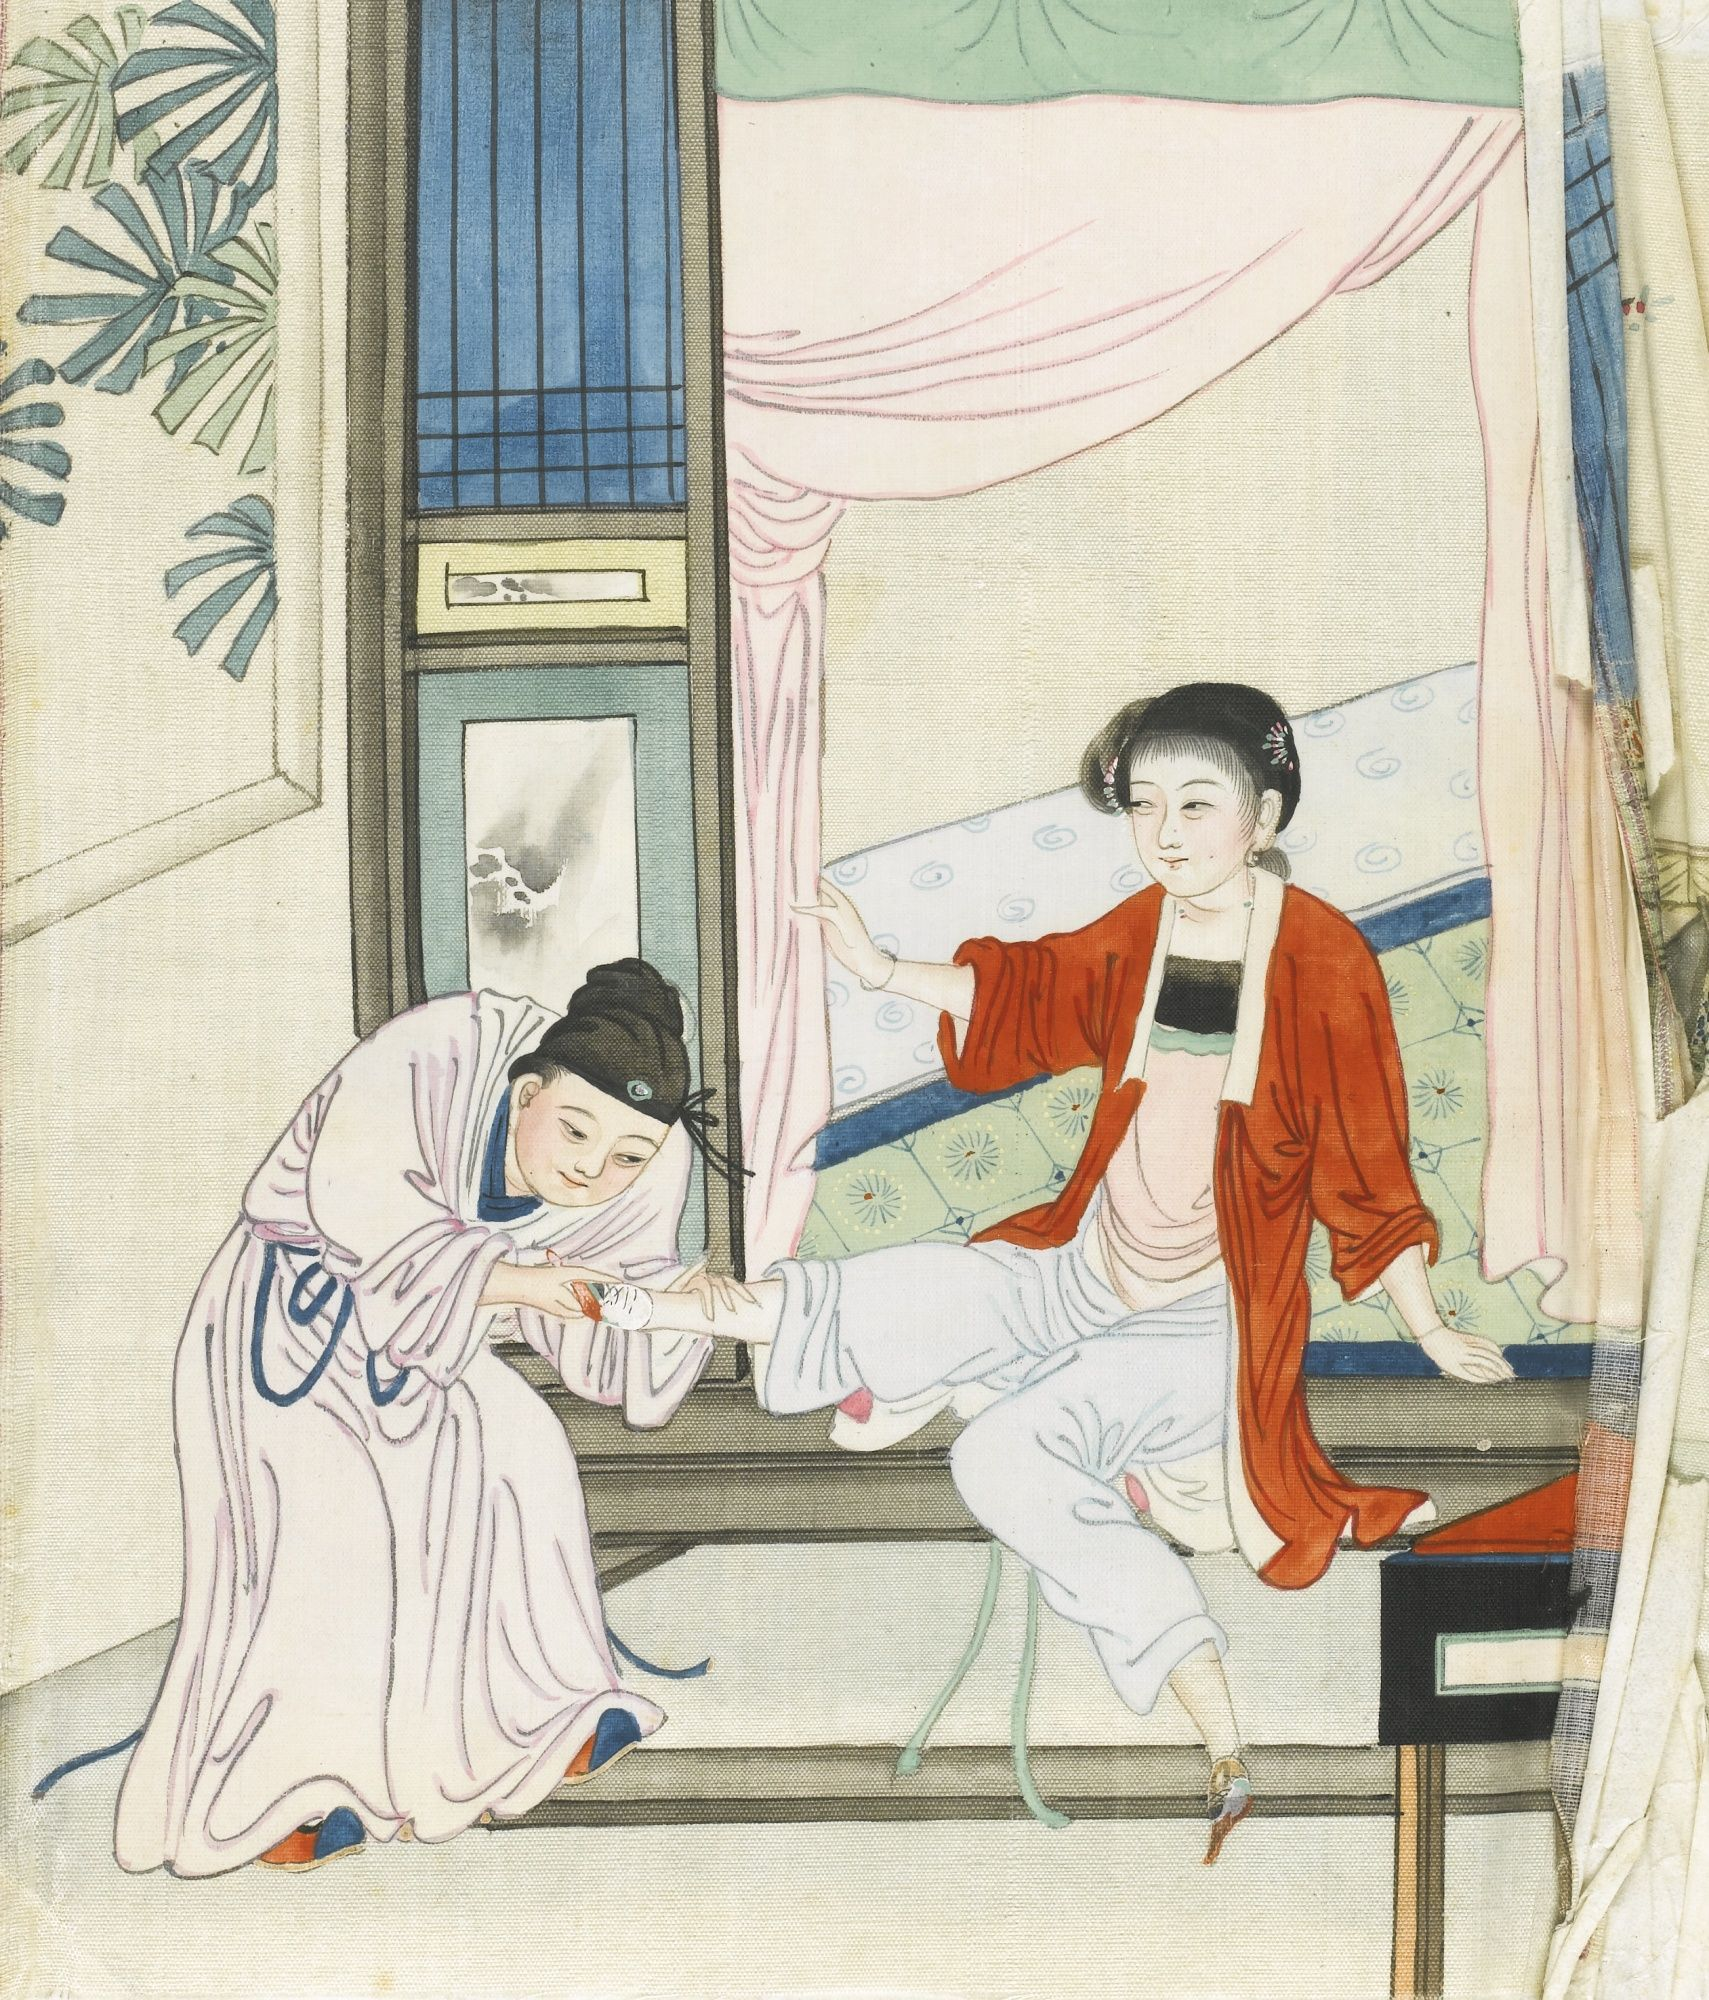 Erotic china paintings